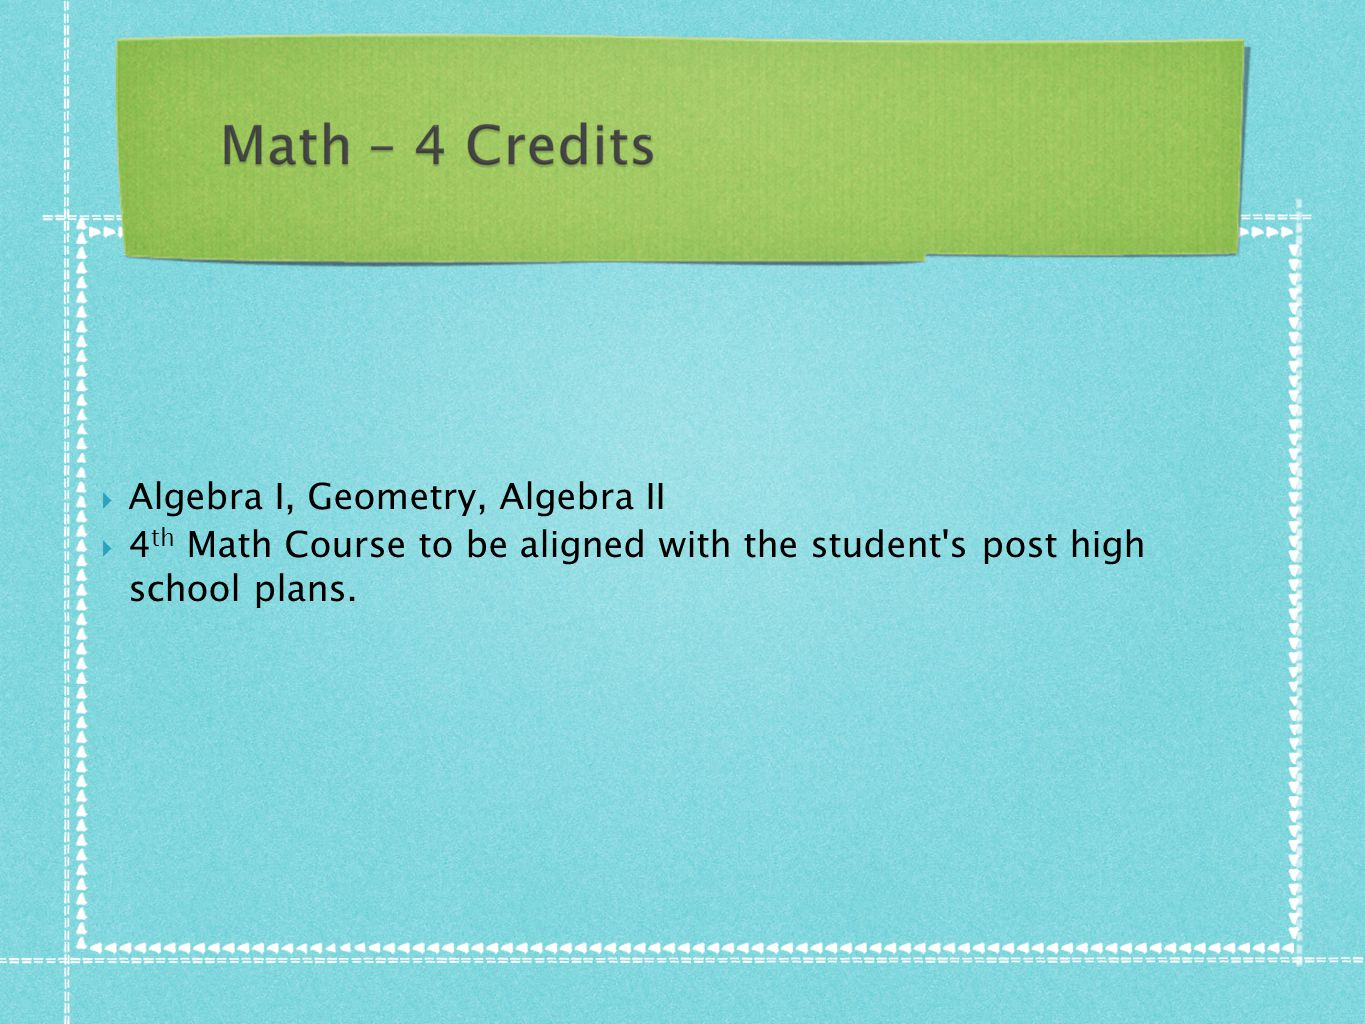  Algebra I, Geometry, Algebra II  4 th Math Course to be aligned with the student's post high school plans.